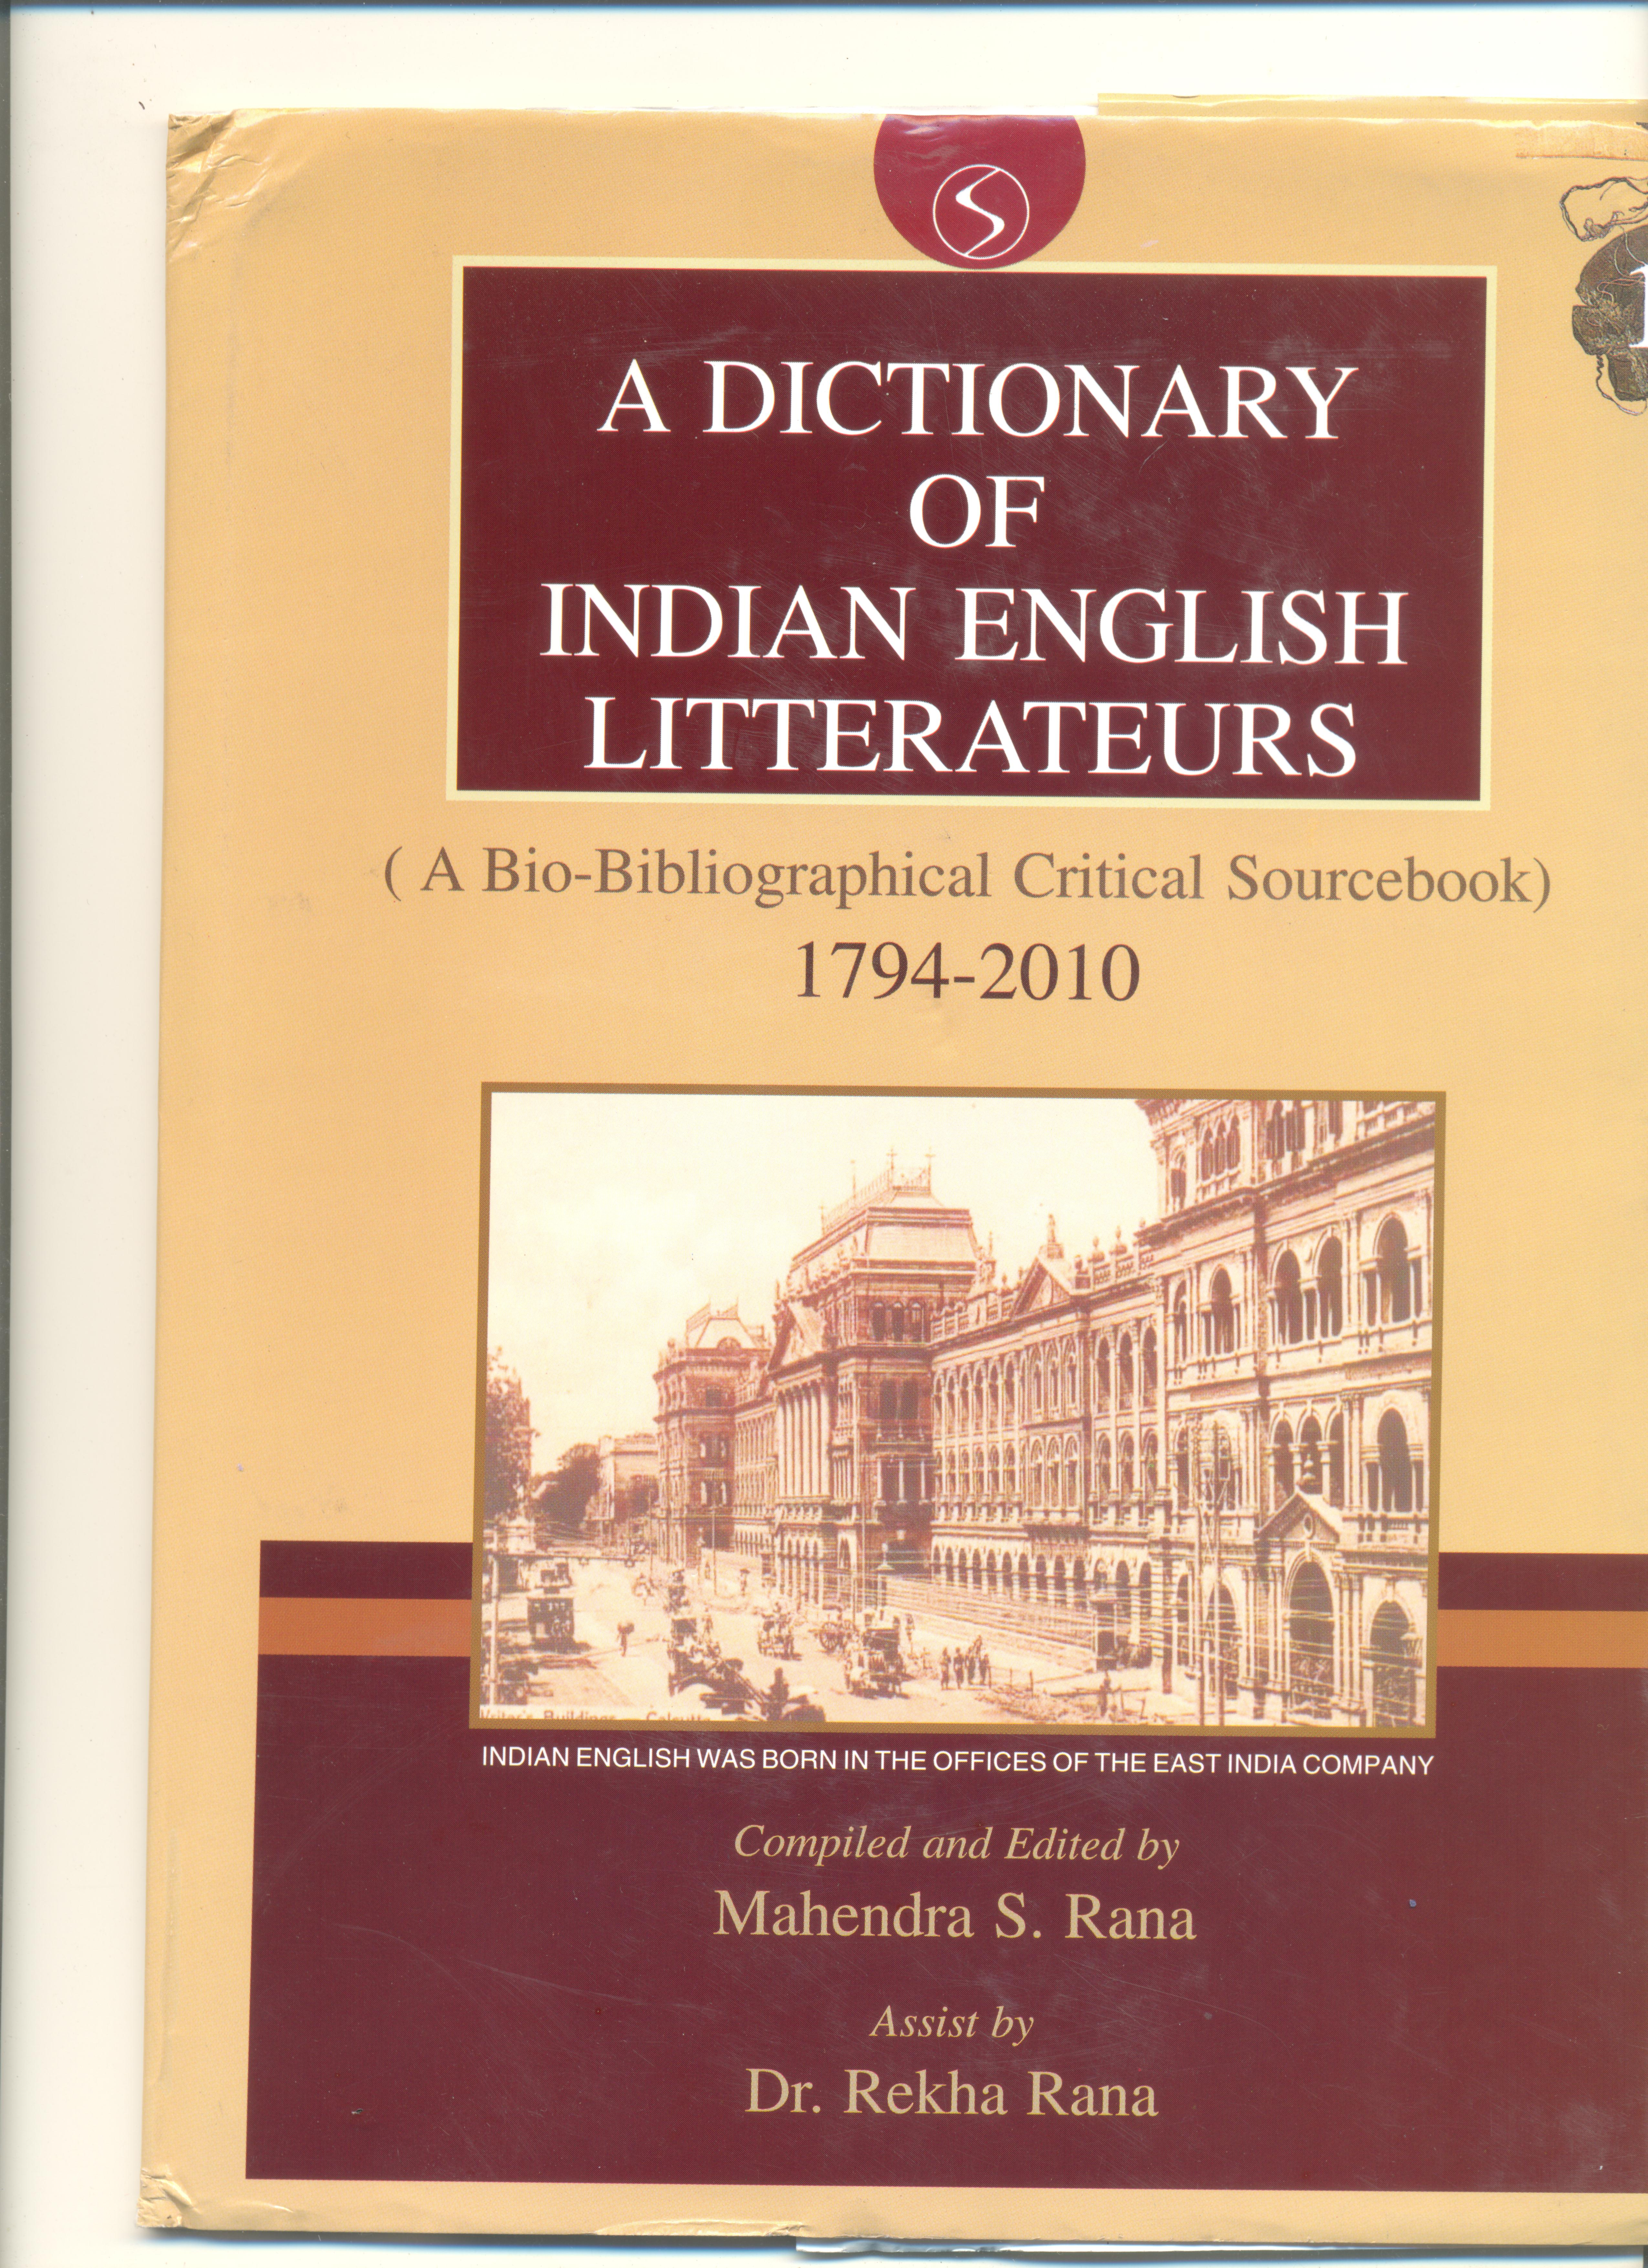 A Dictionary of Indian English Litterateurs